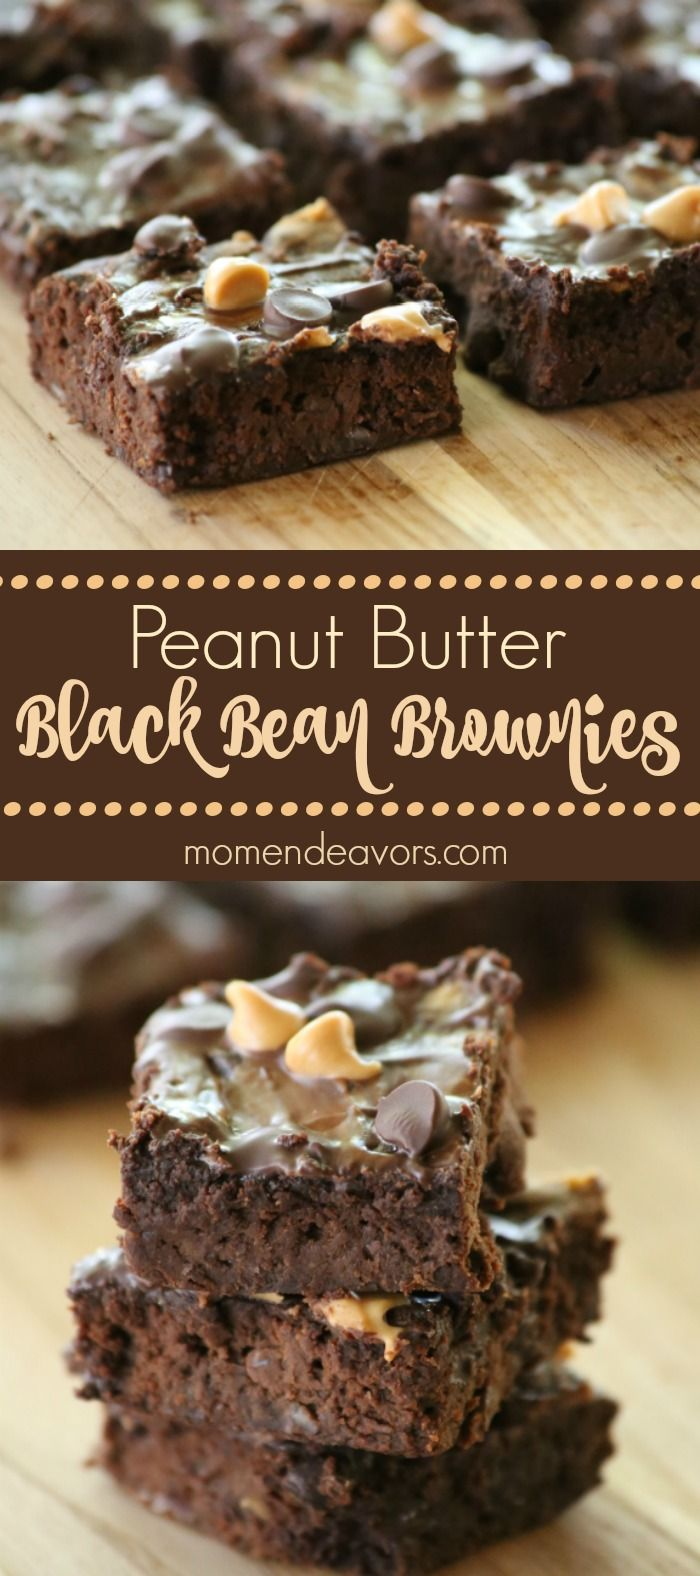 Fudgy peanut butter black bean brownies! These little treats are SO good, full of protein and completely gluten free!